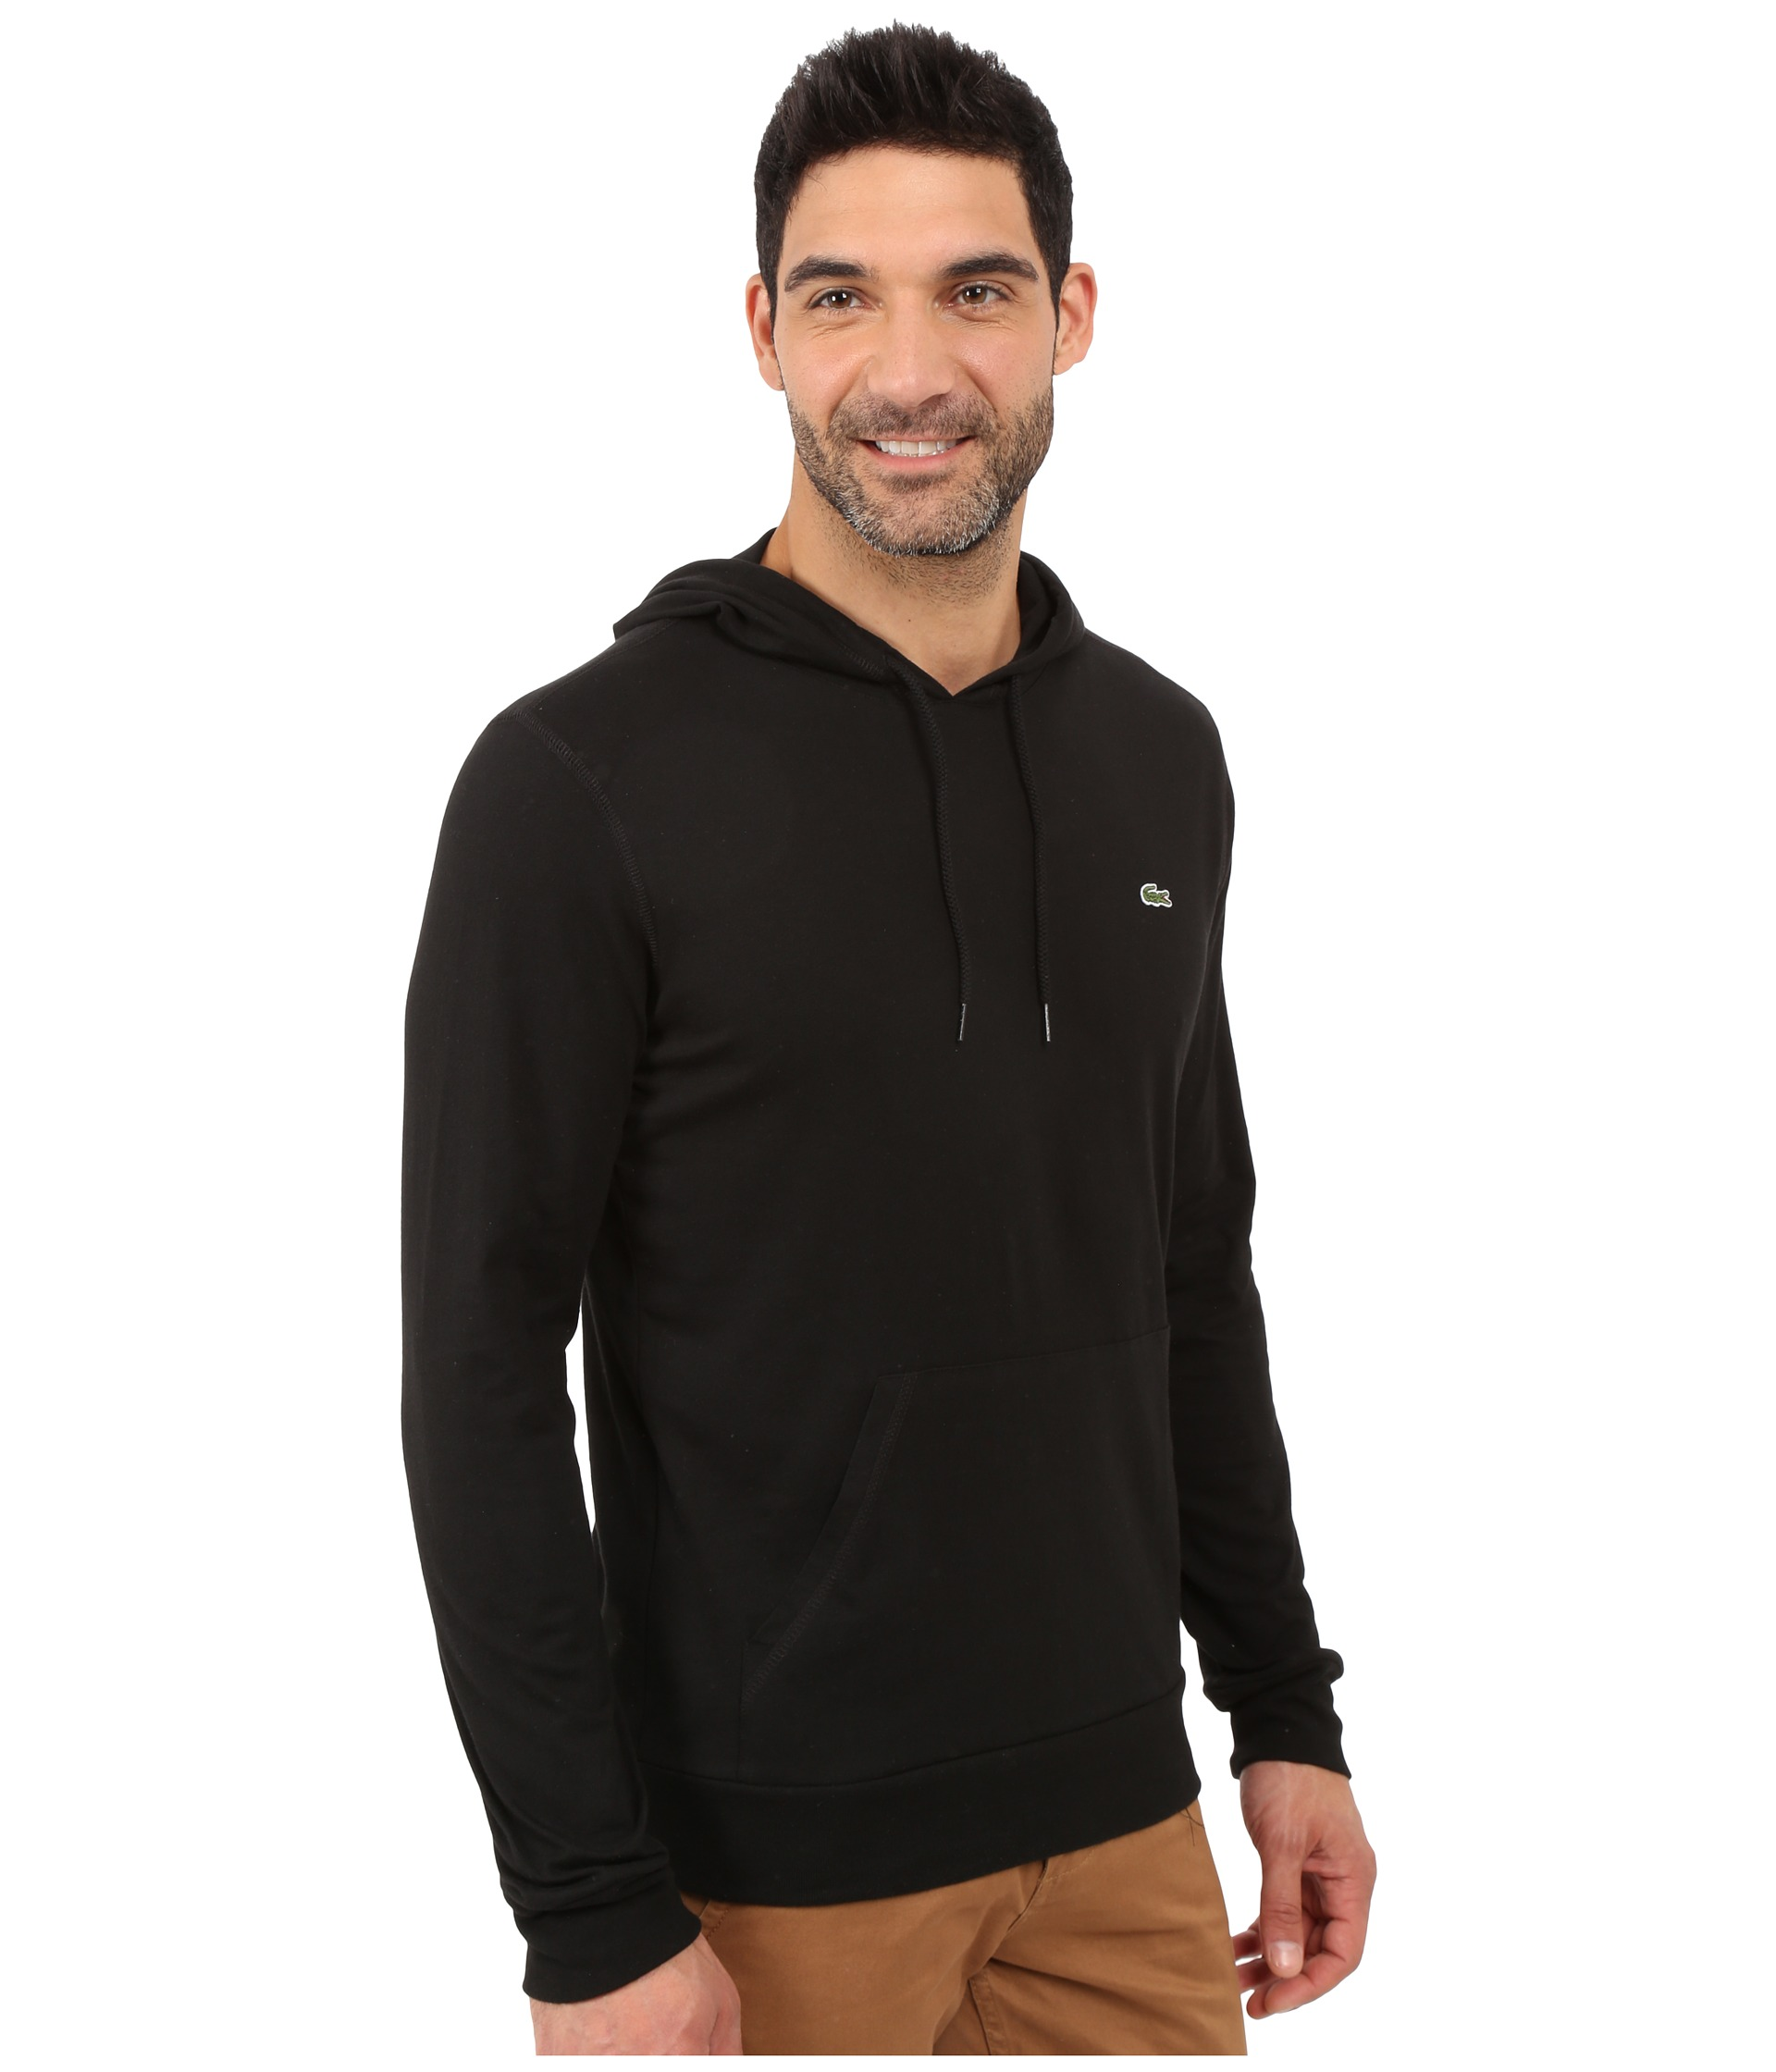 Black t shirt hoodie - Sorry This Video Is Unsupported On This Browser